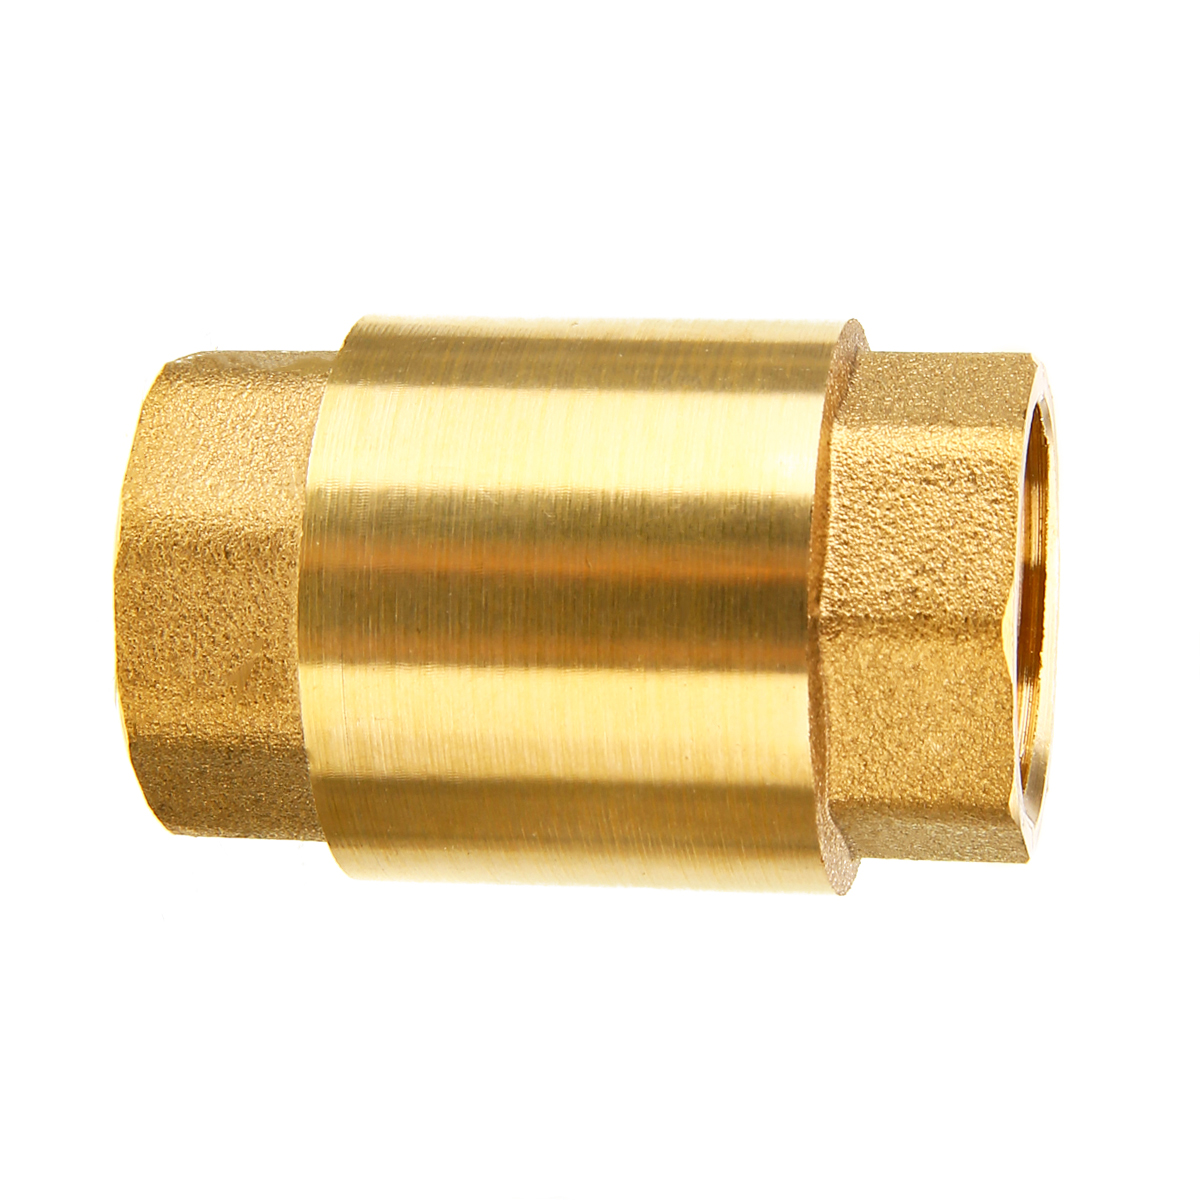 1pc 1 2 npt brass check valve high quality thread in line [ 1200 x 1200 Pixel ]